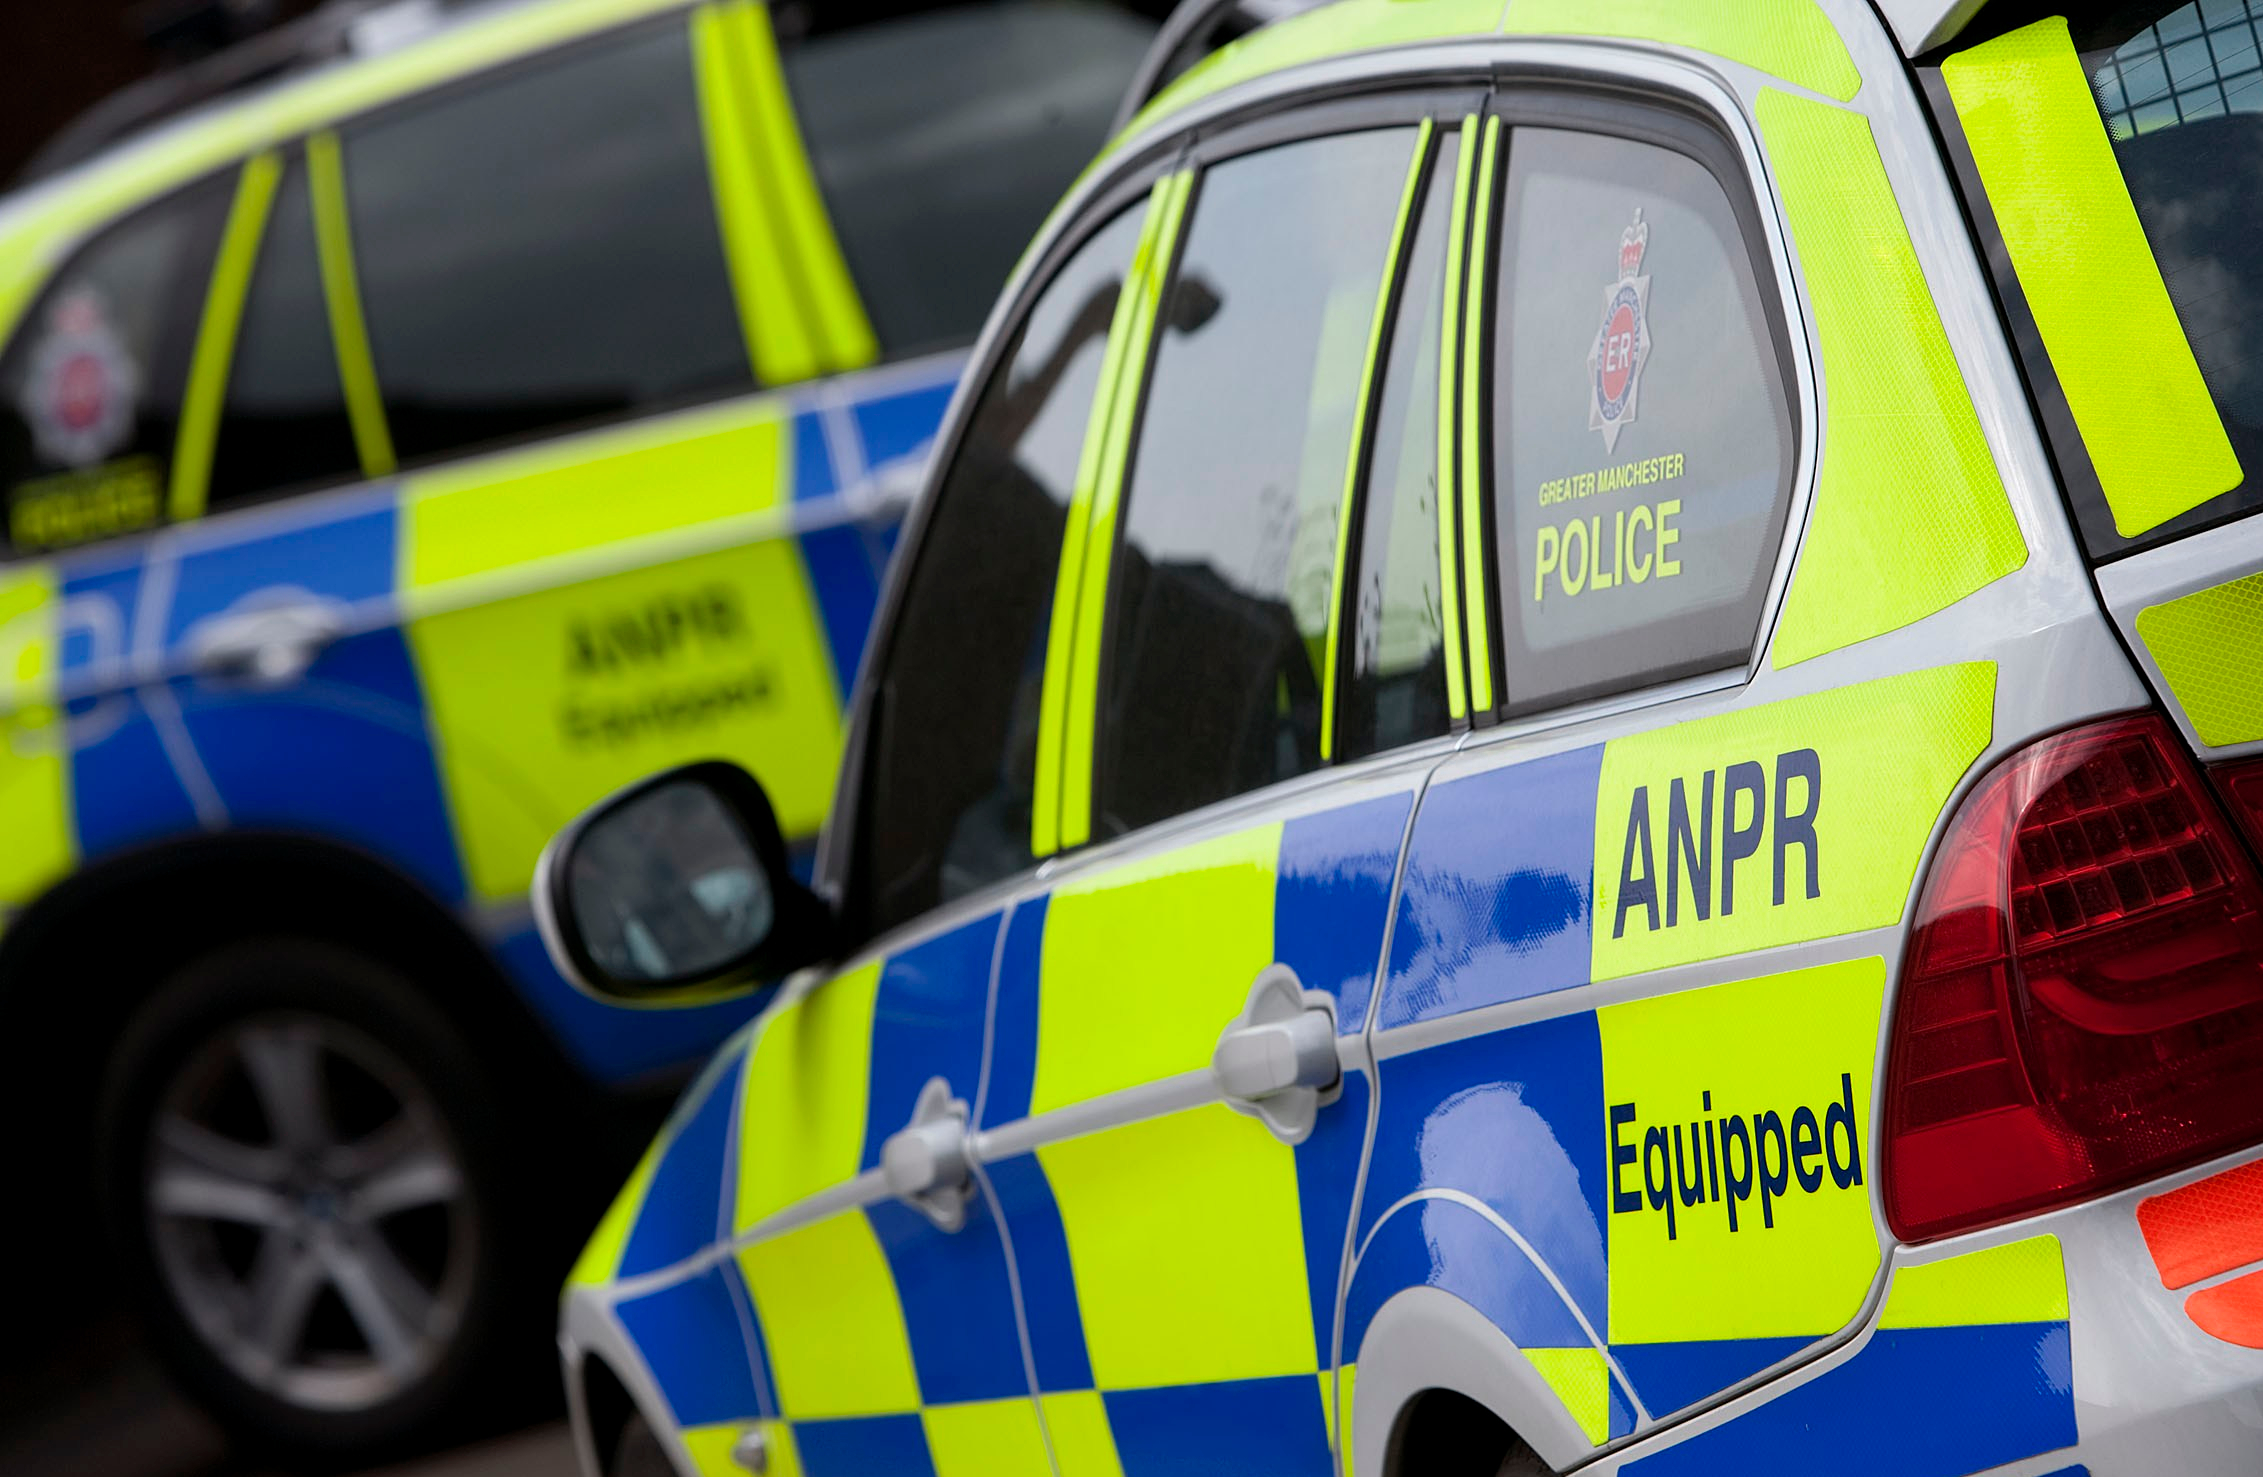 Man charged after committing serious offences in the Altrincham area